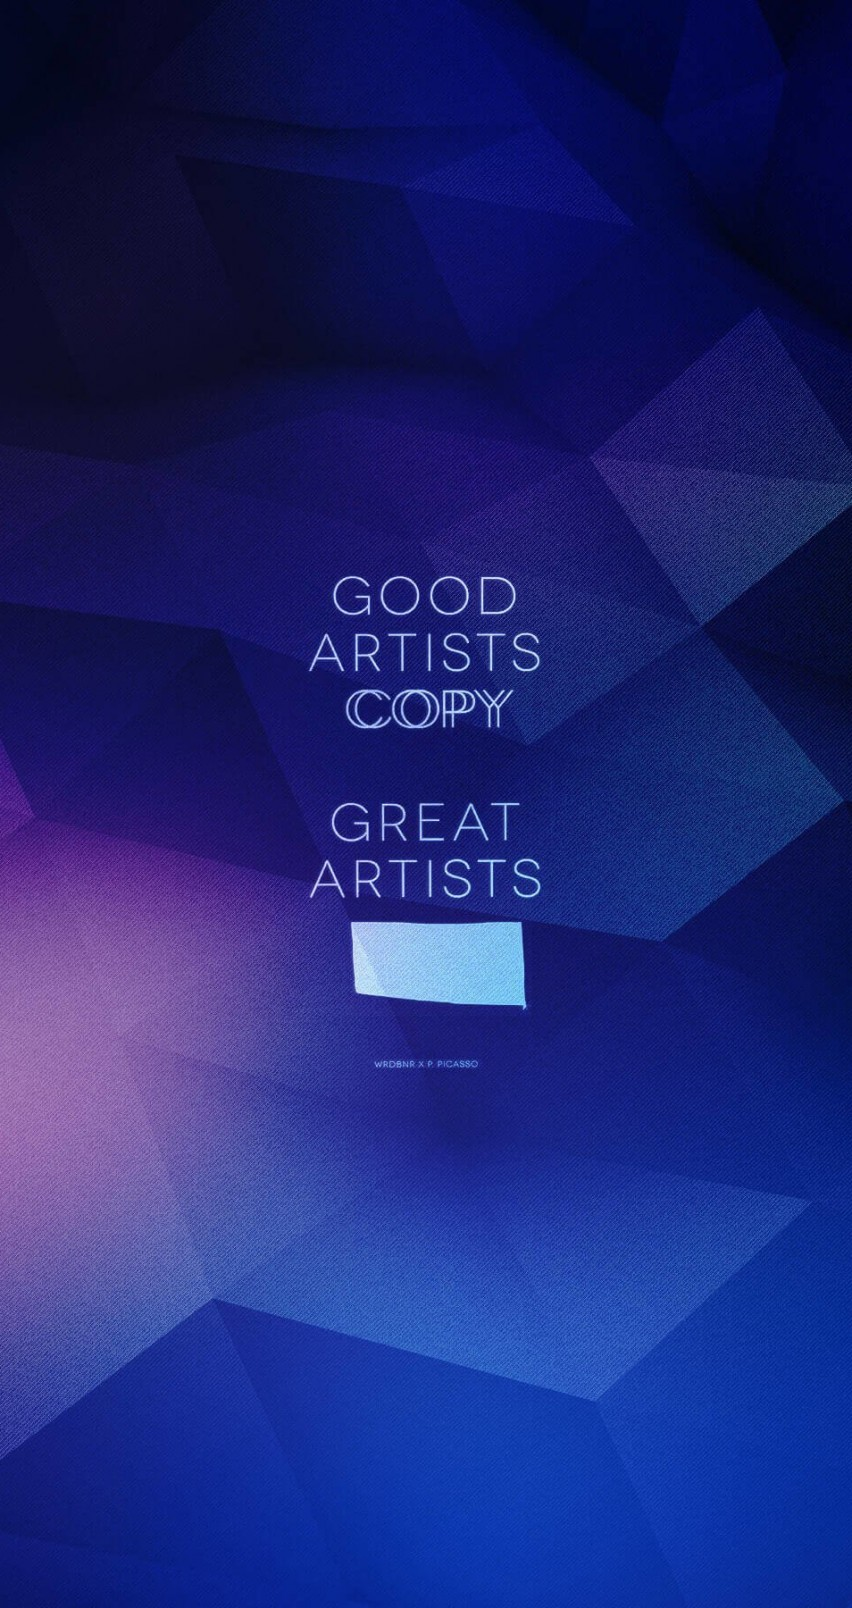 good artists copy hd wallpaper for iphone 6